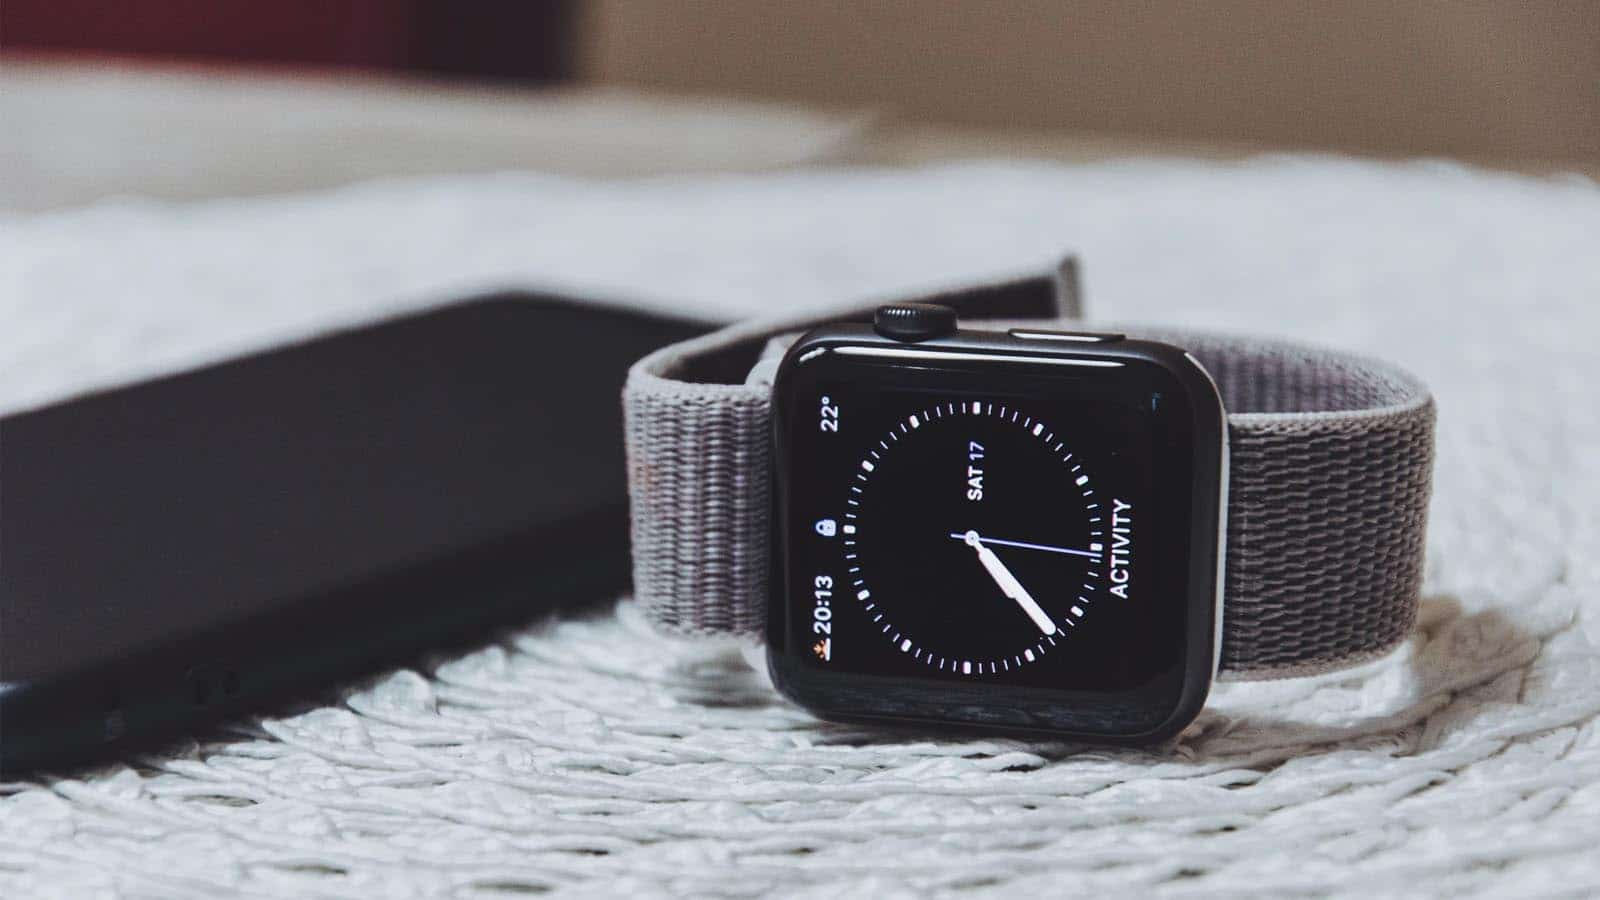 apple watch on bed